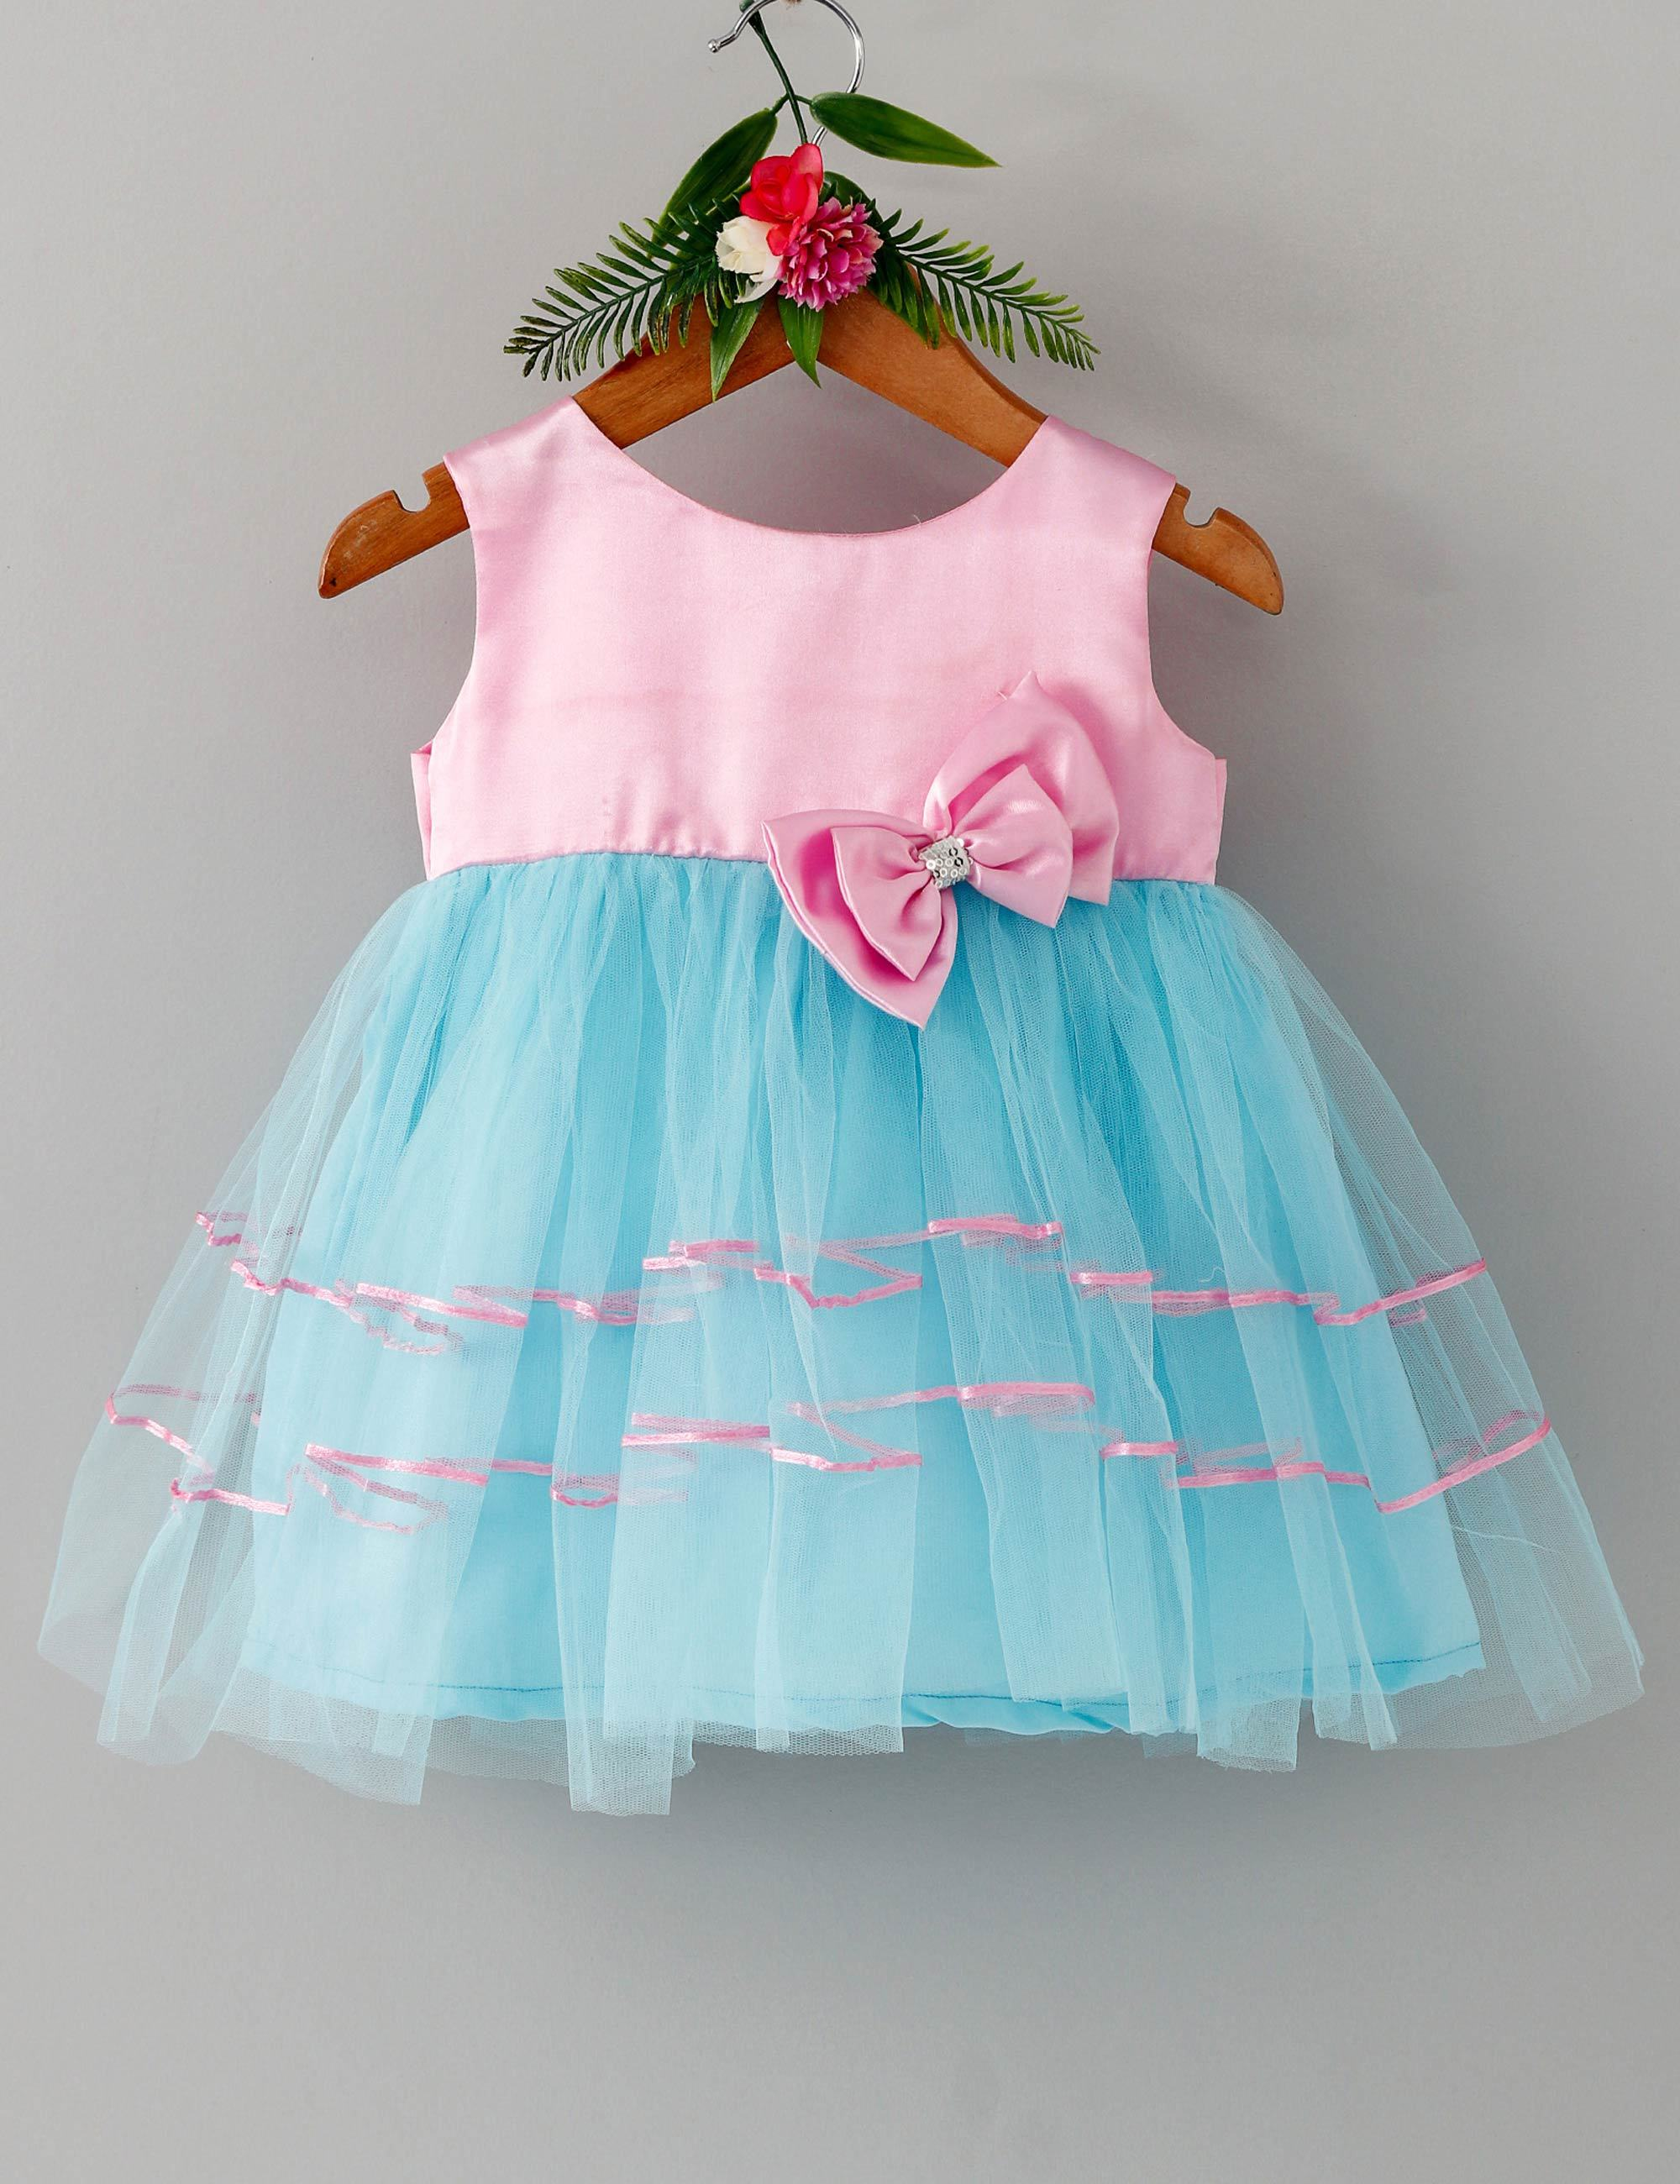 Double bow sleeveless baby party frock-Pink and Blue